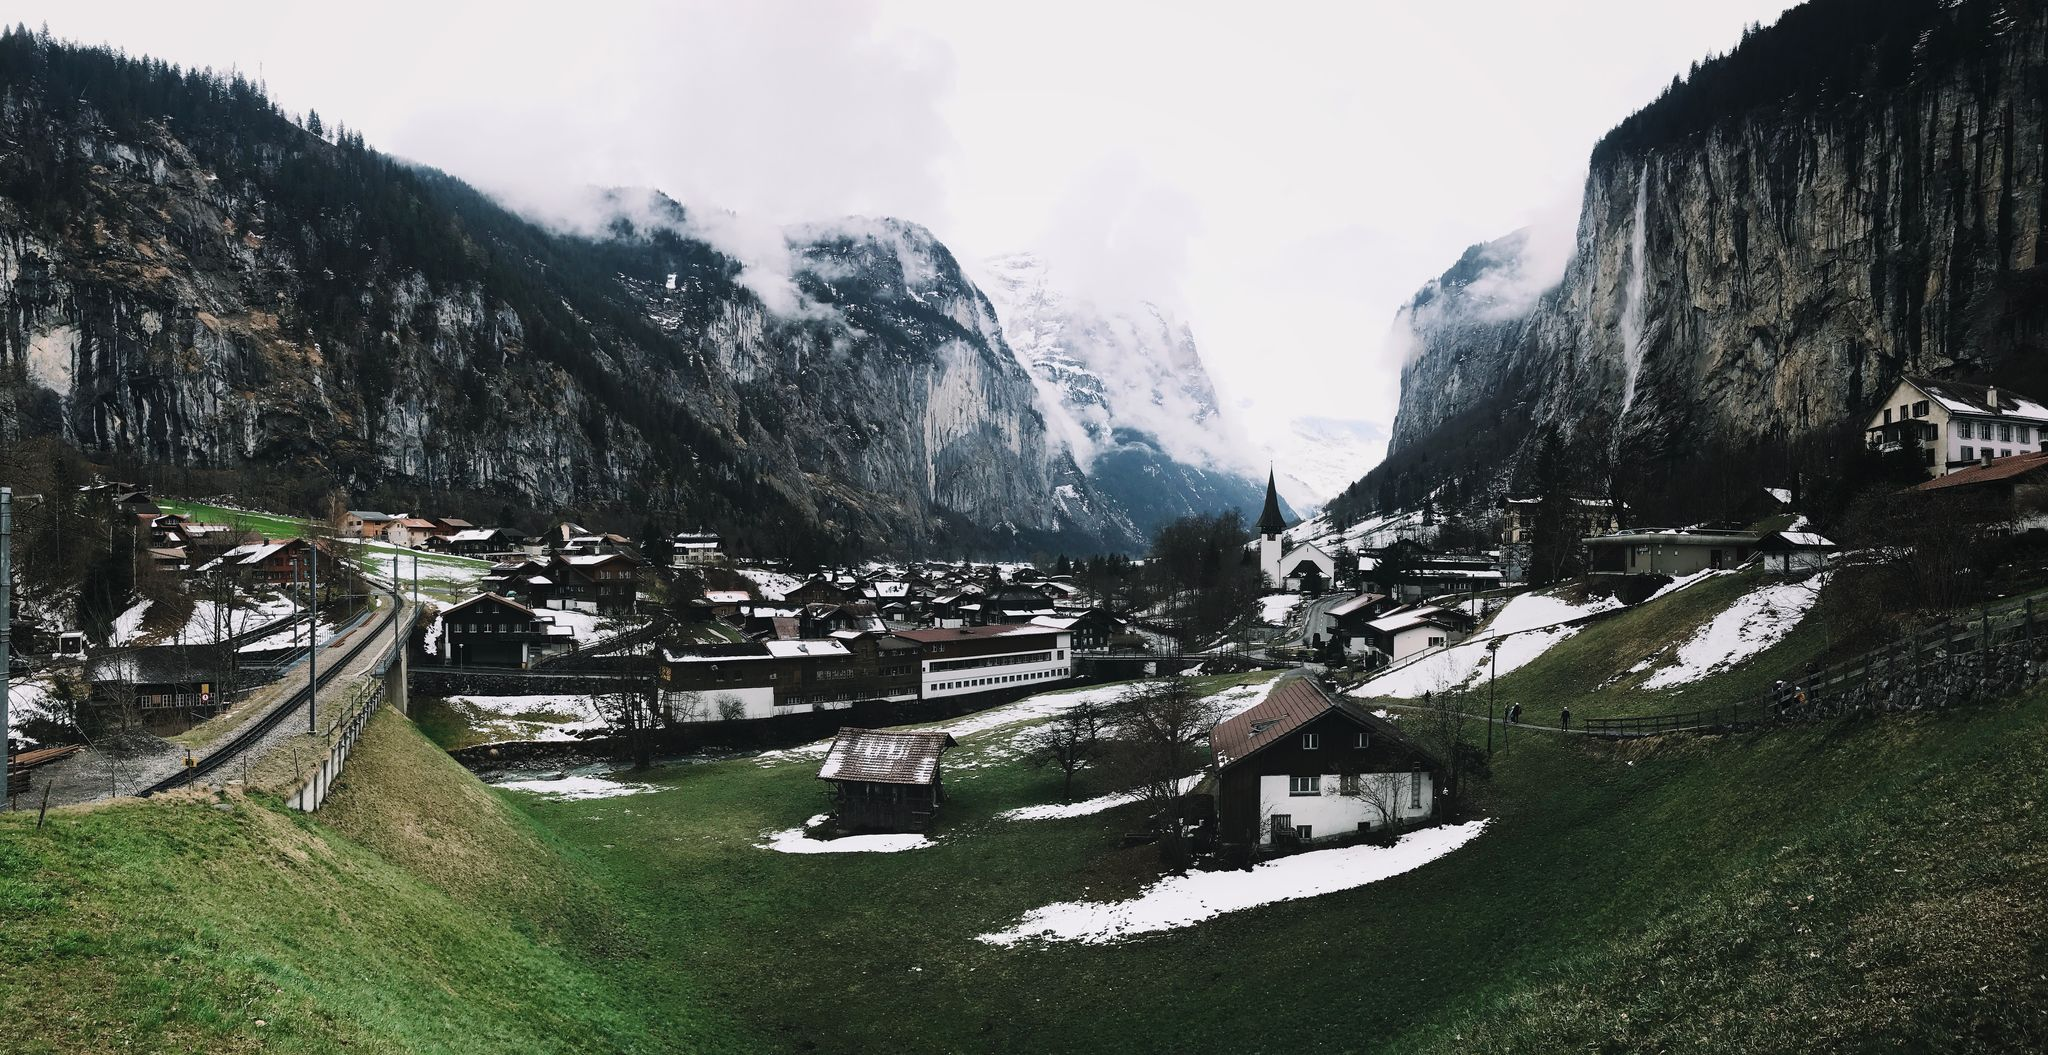 A view of a Swiss village on the hillside with very large craggy mountains in the background.